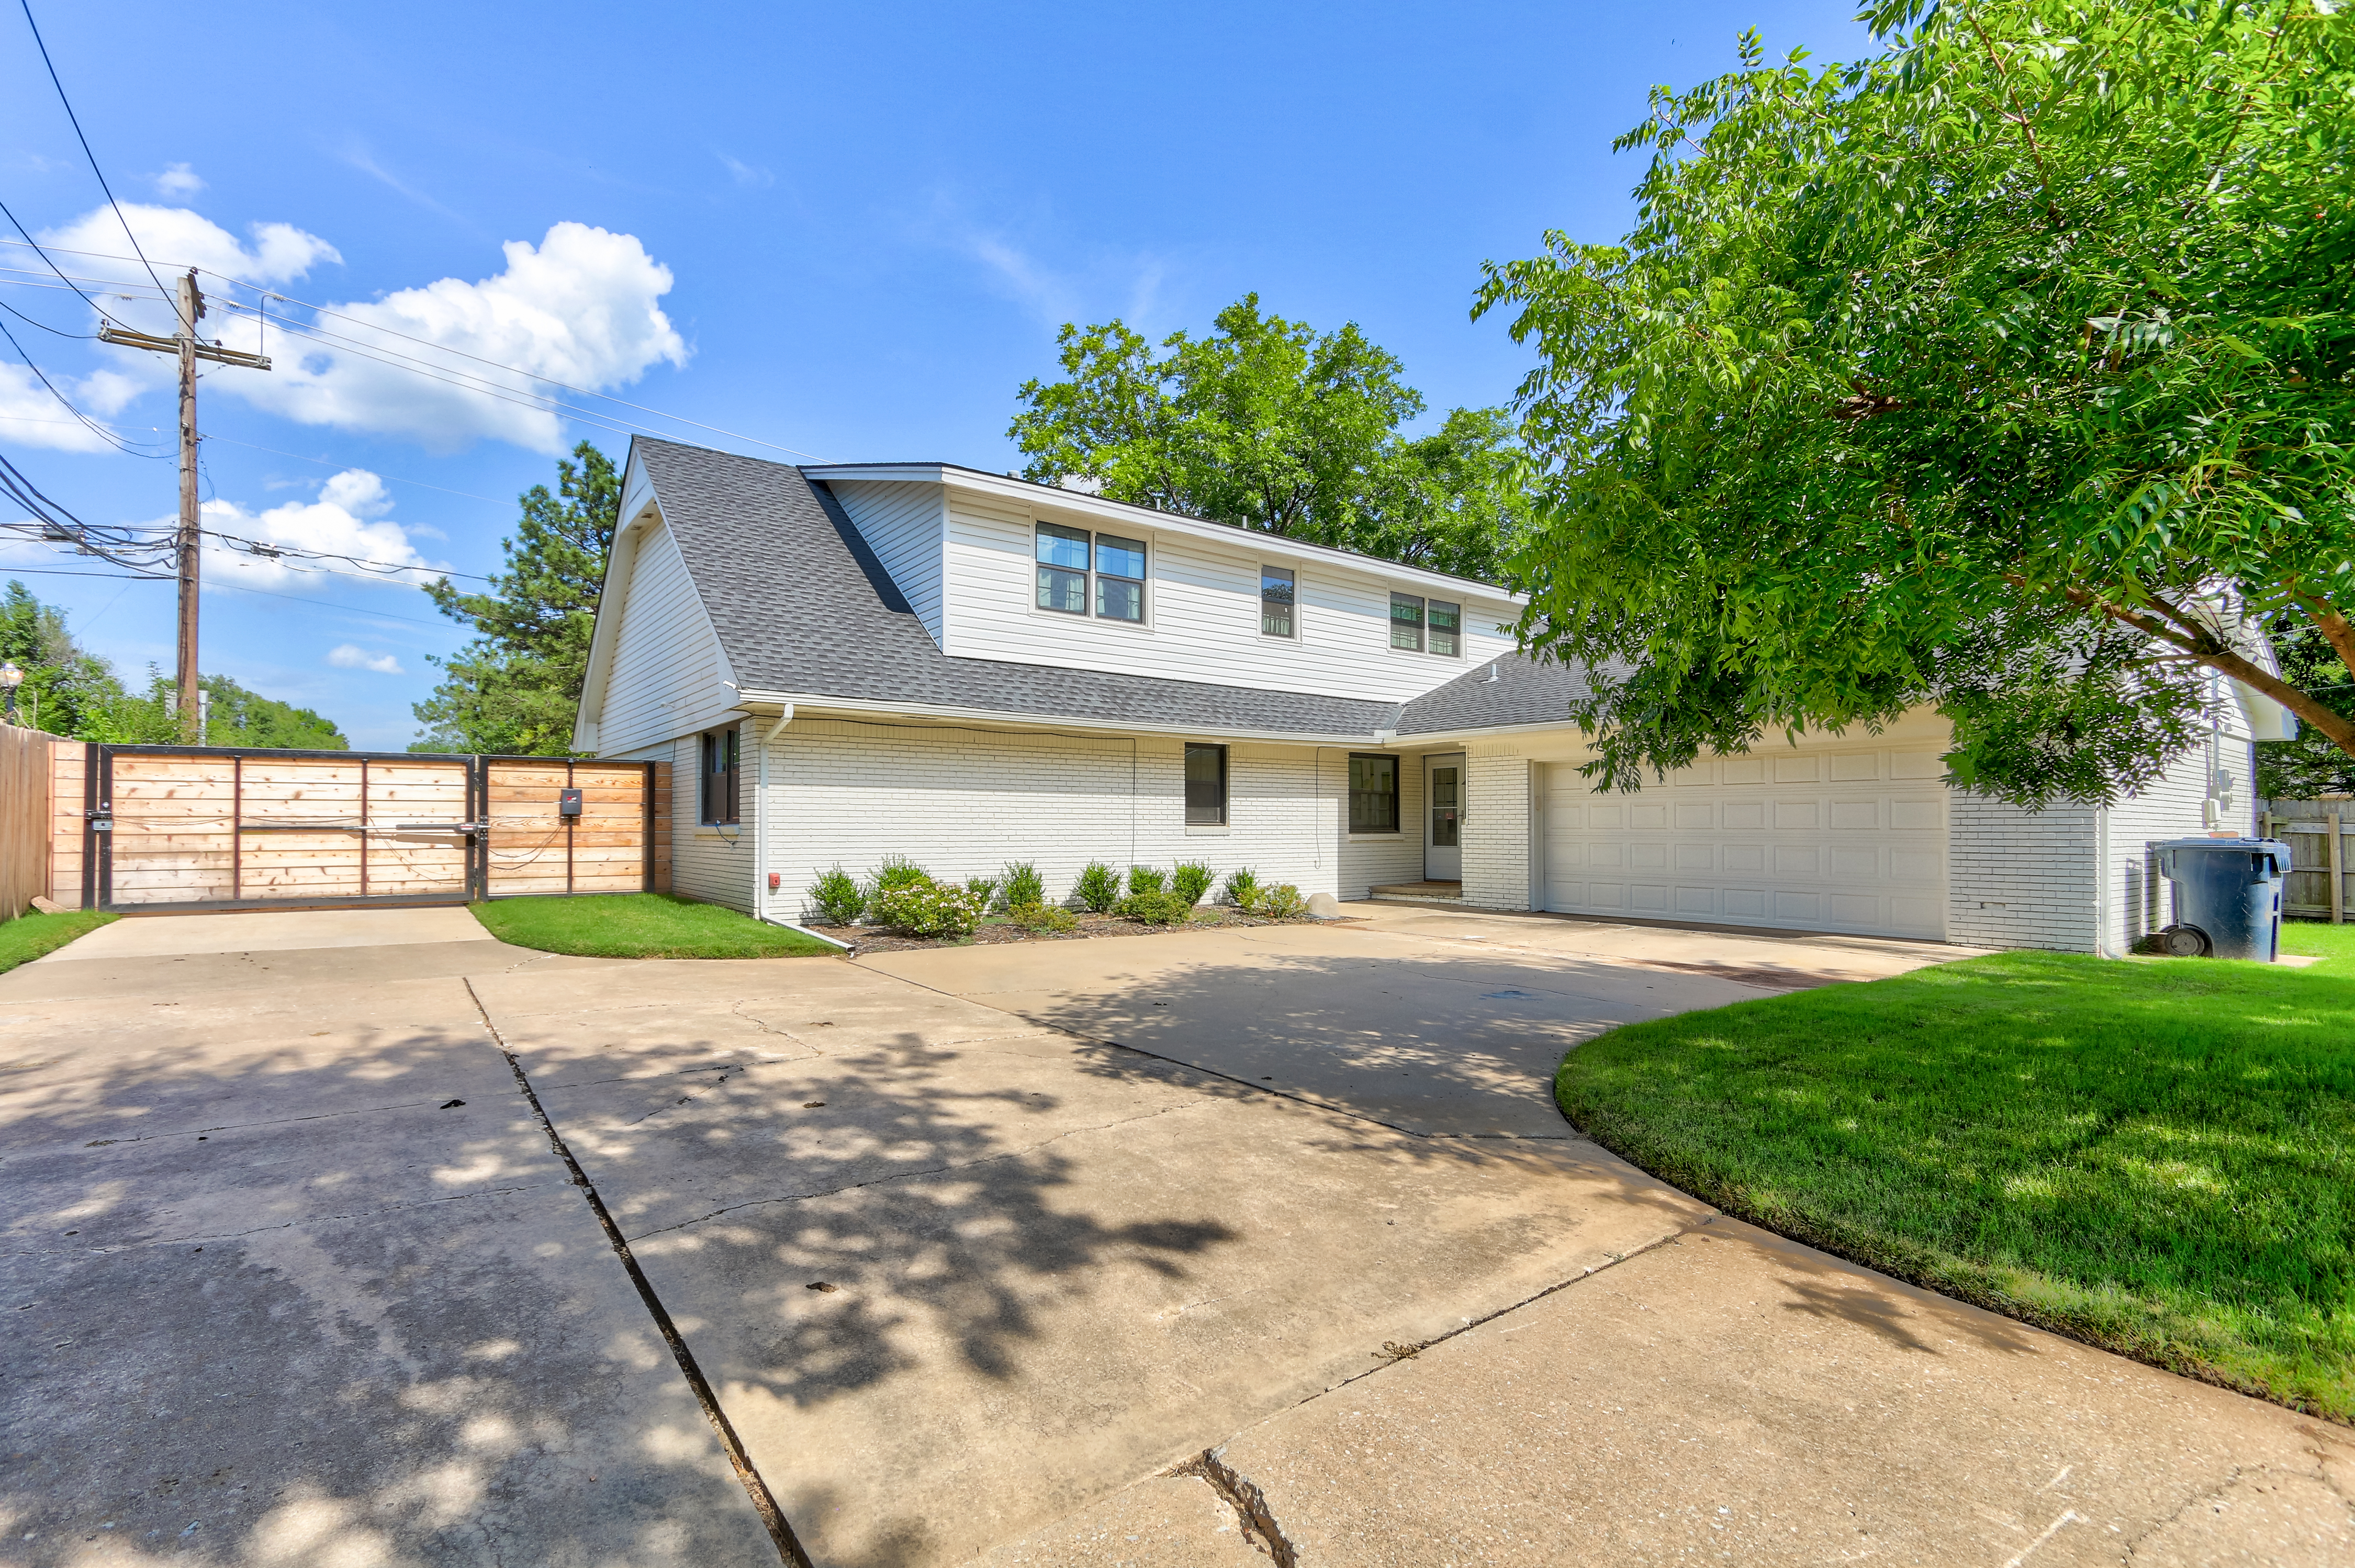 53_8617 greystone avenue, the village, o